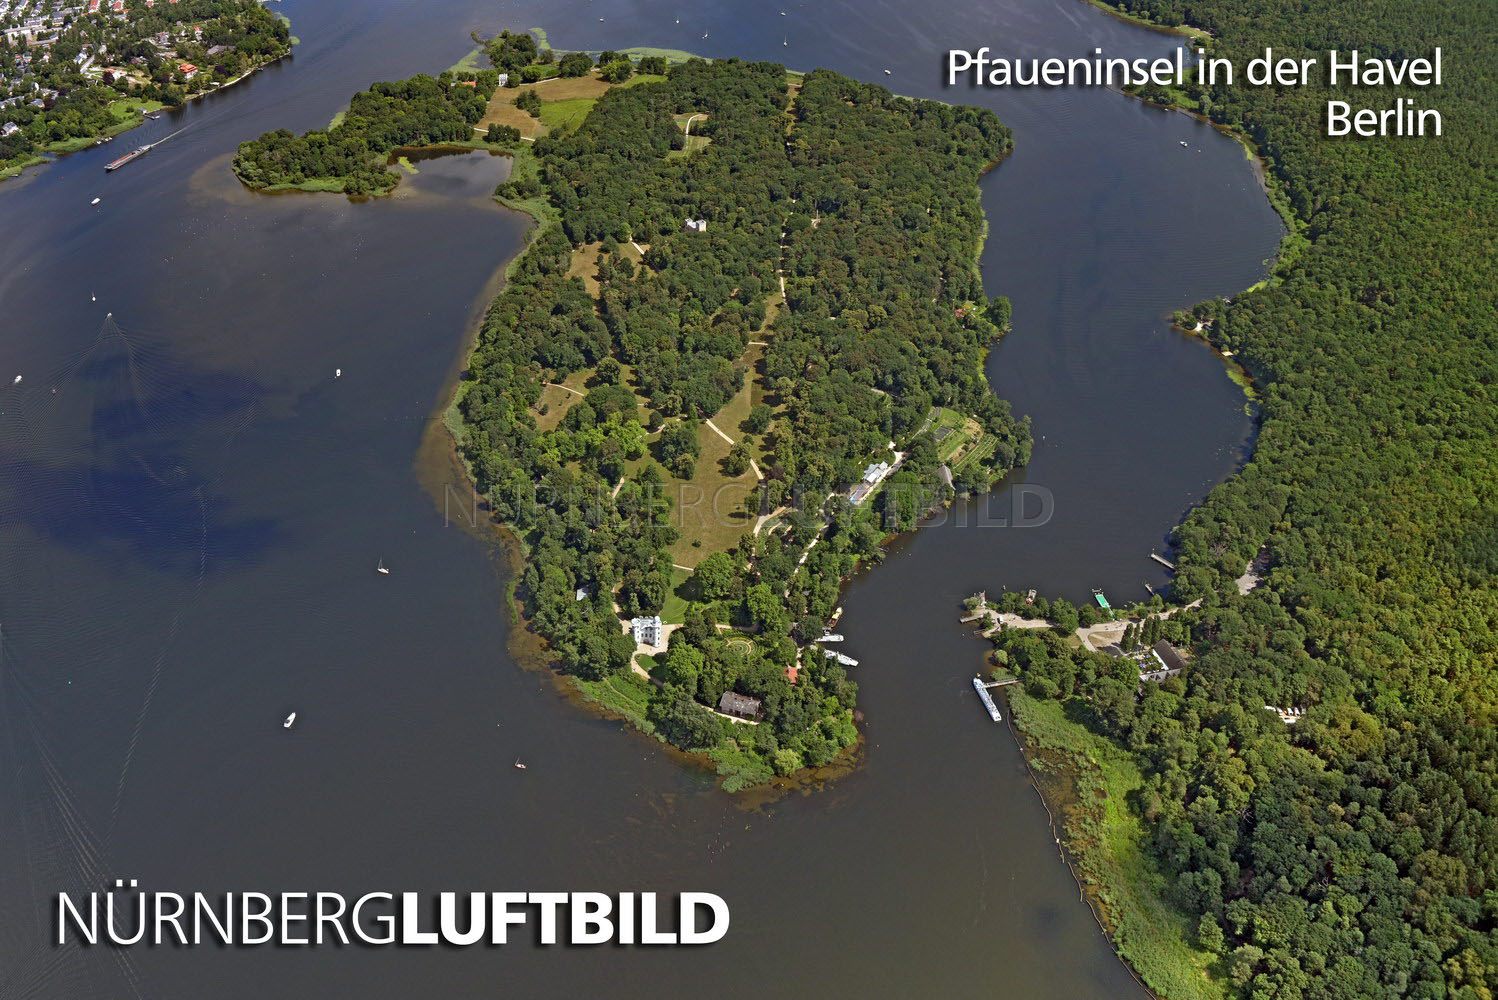 Pfaueninsel in der Havel, Berlin, Luftbild